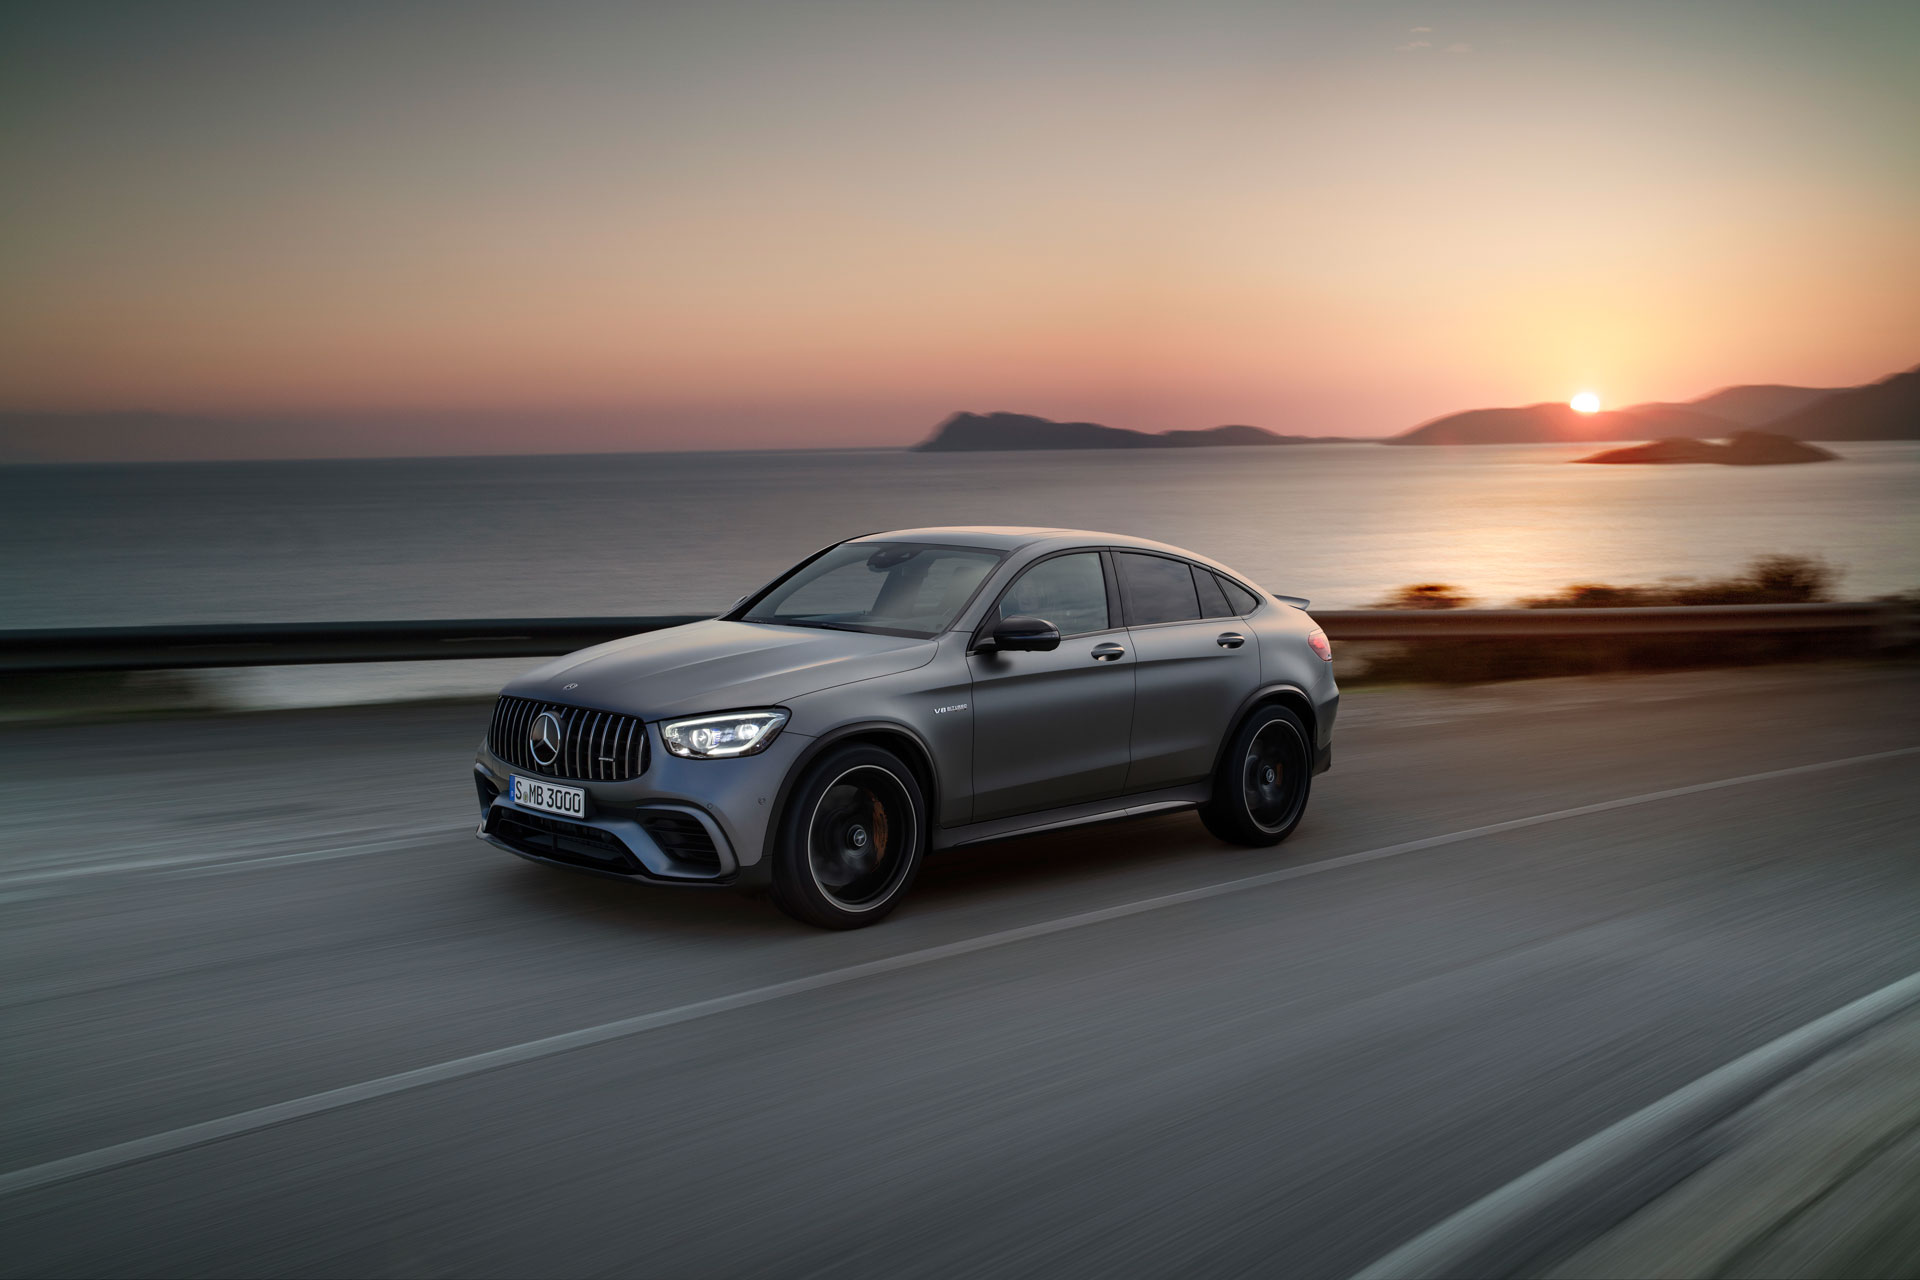 Автомобіль Mercedes-AMG GLC 63 4MATIC